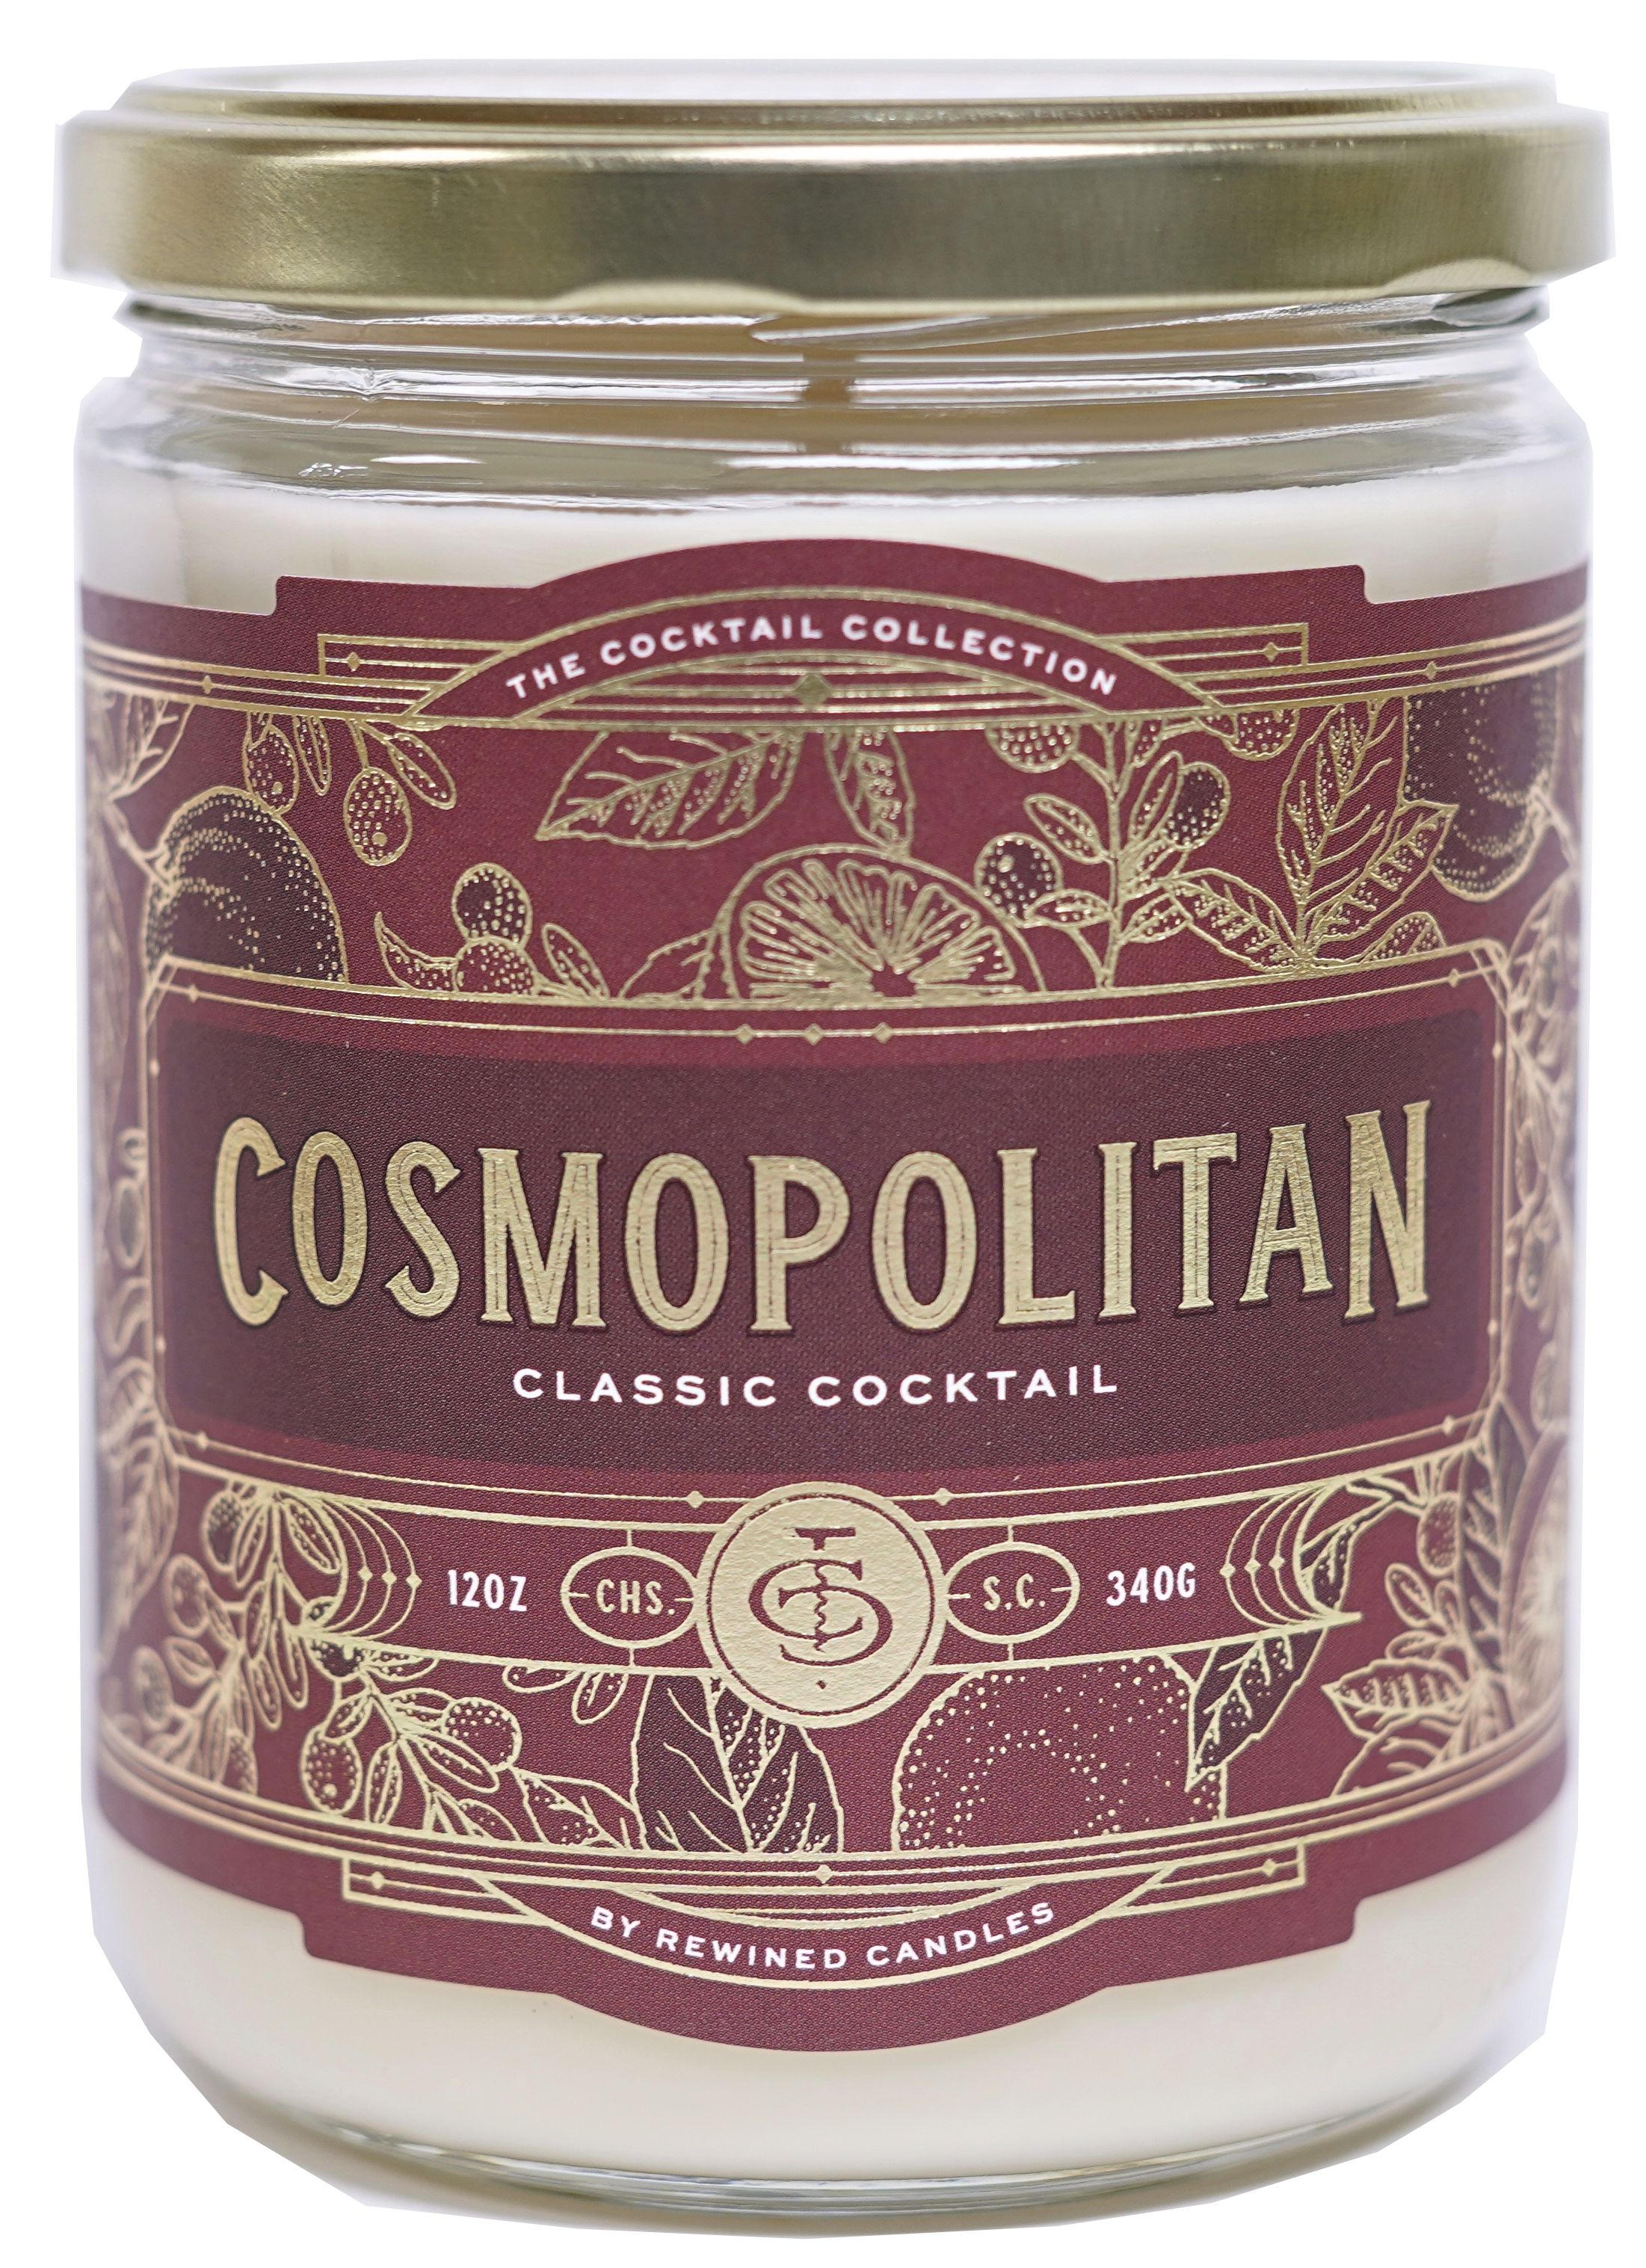 wine.com Cosmopolitan Candle by Rewined  Gift Product Image